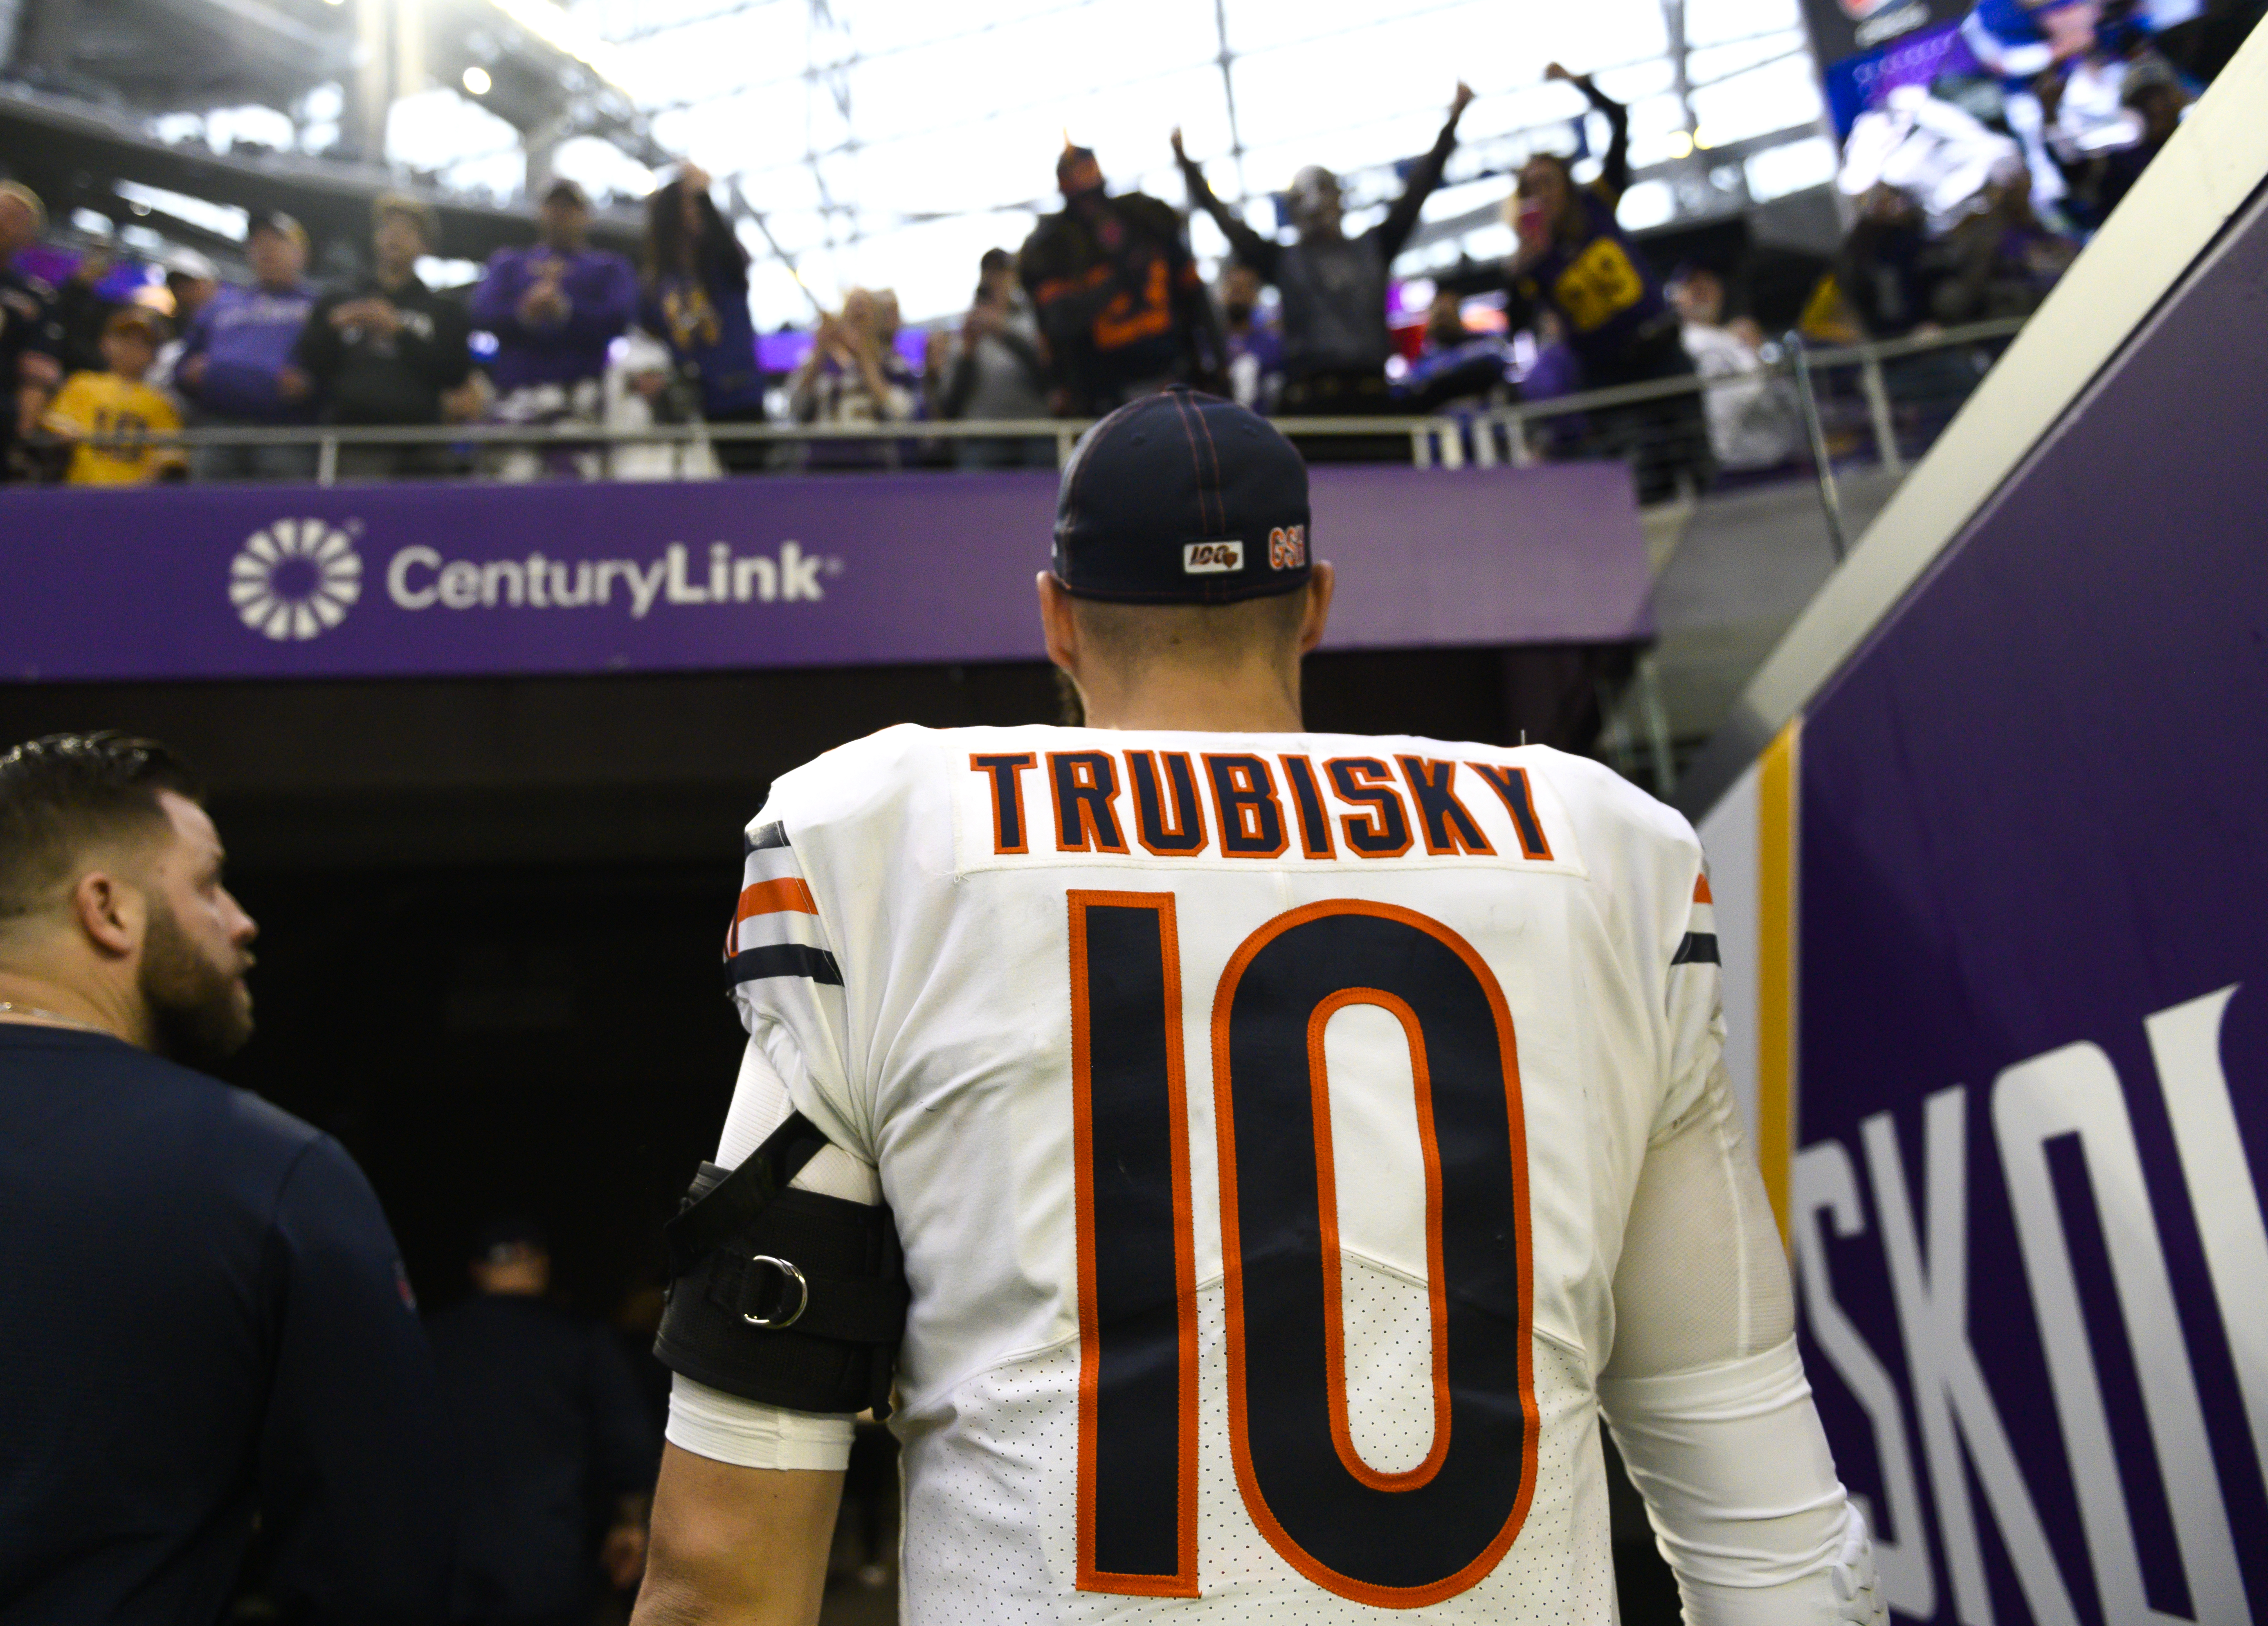 The Bears once again are pinning their hopes on Mitch Trubisky. Where are he and they going? We're about to find out.